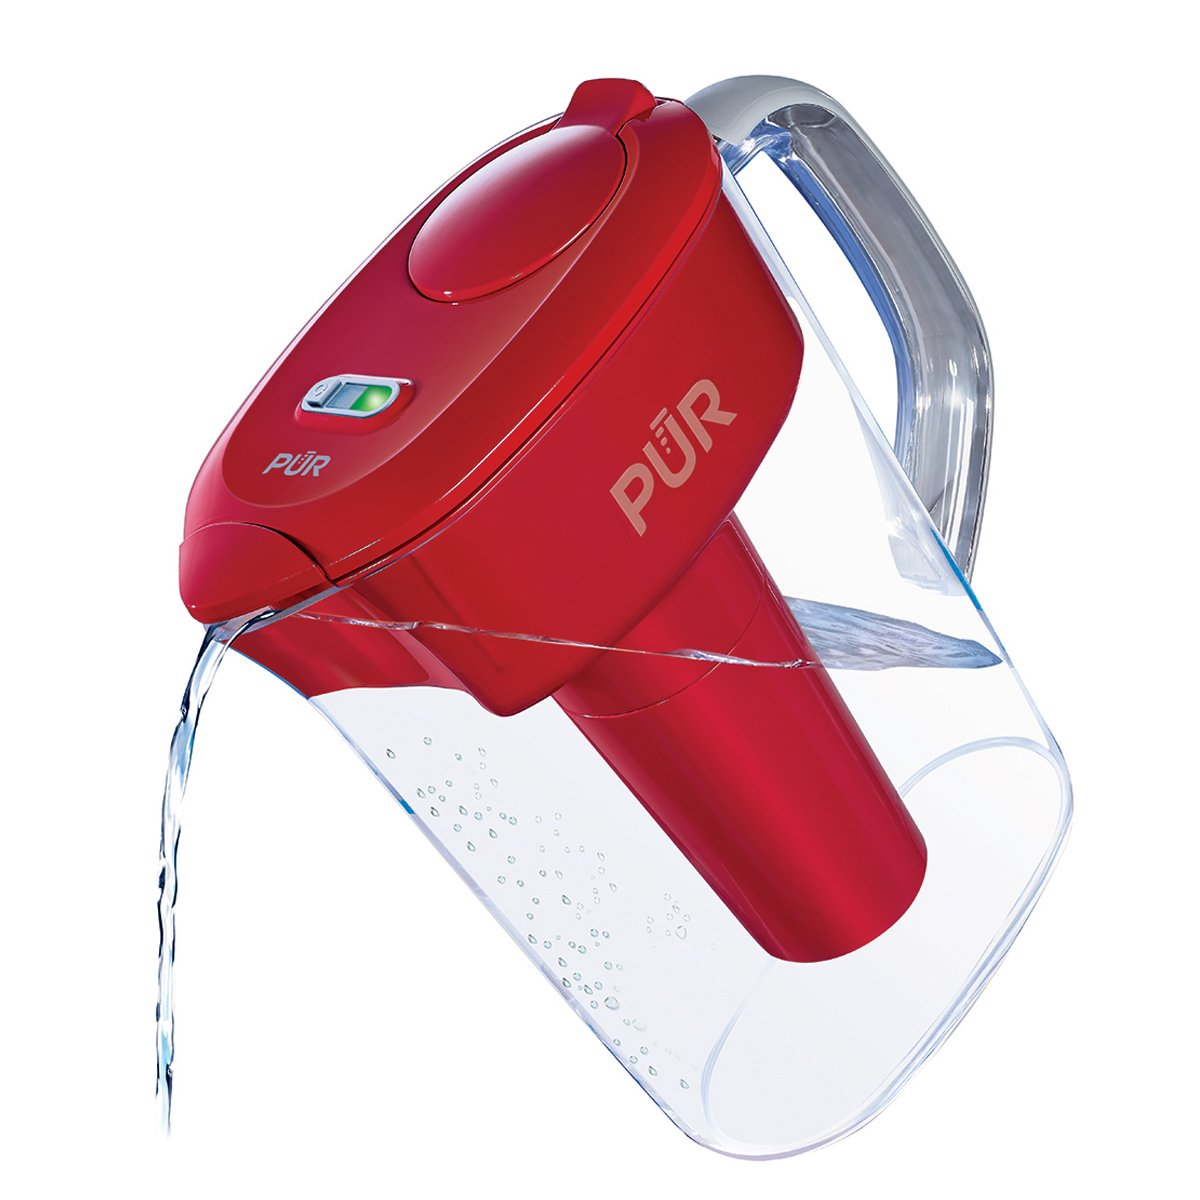 PUR 7 Cup Ultimate Water Filtration Pitcher with LED & Lead Reduction Filter, Red